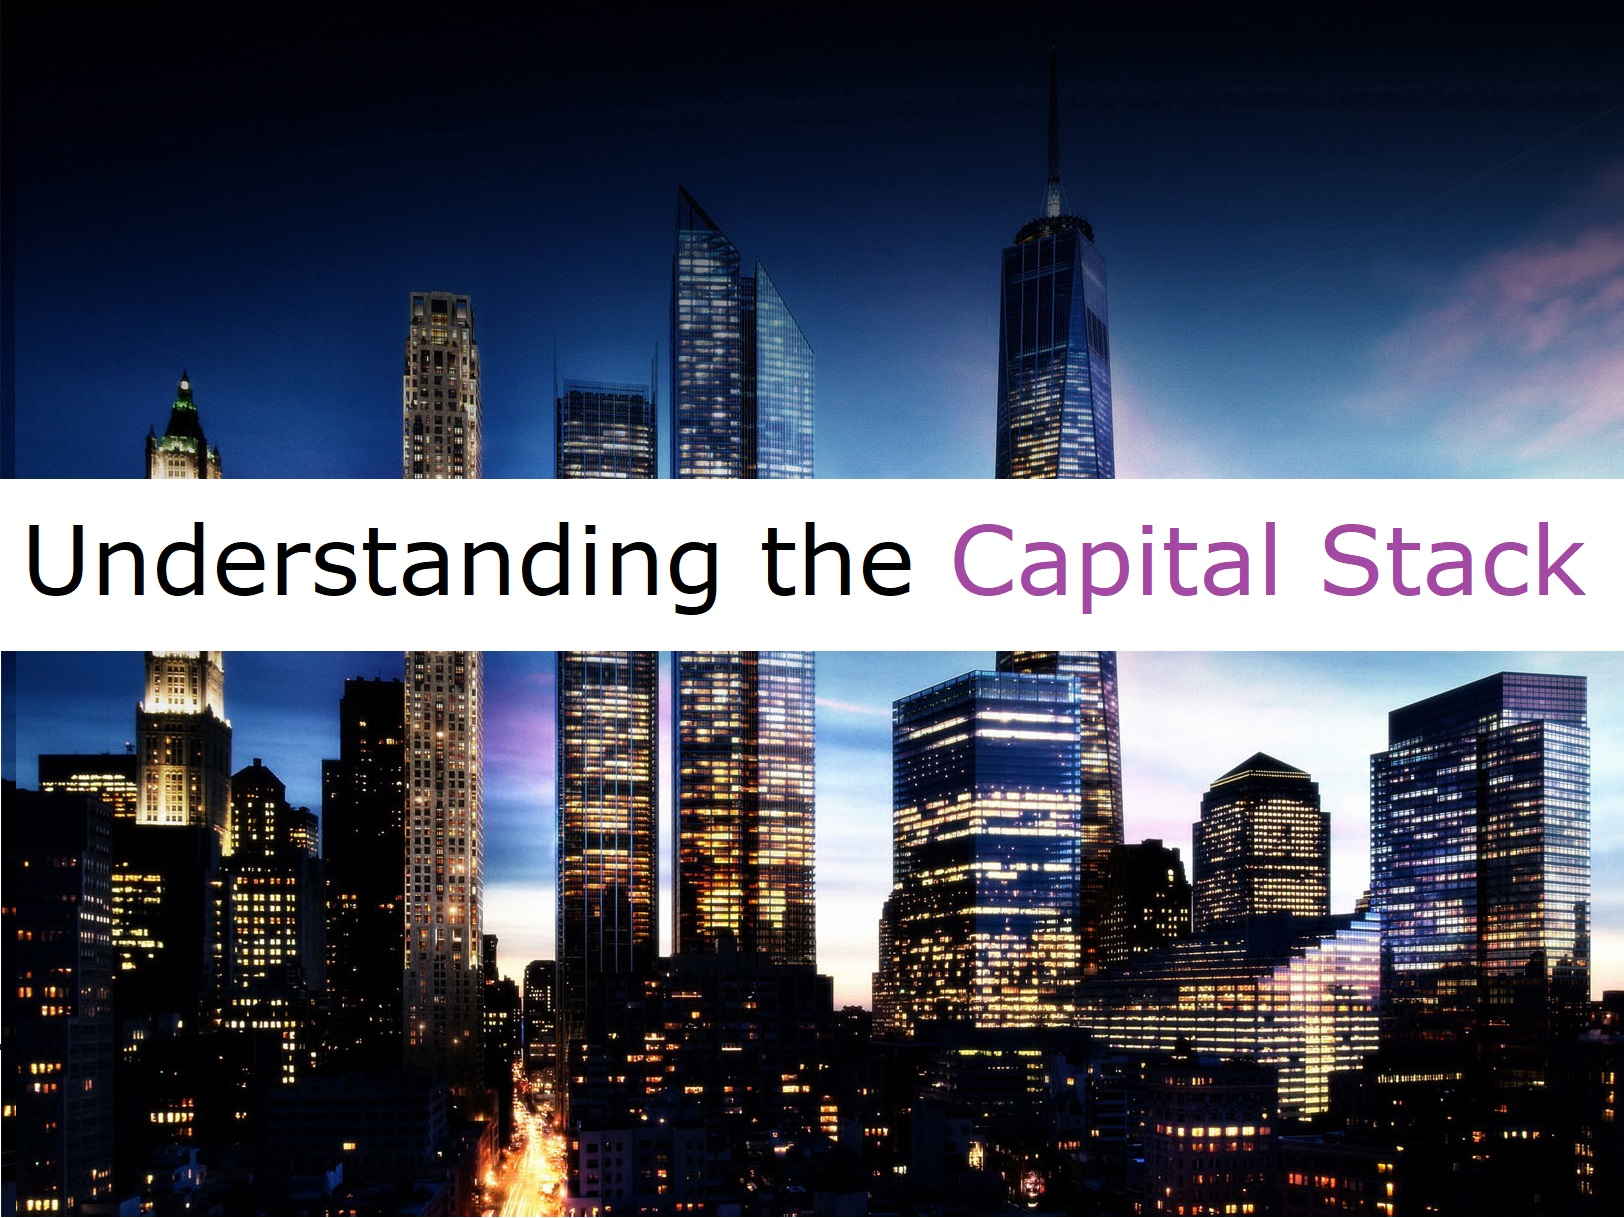 Understanding the capital stack with different levels of investing